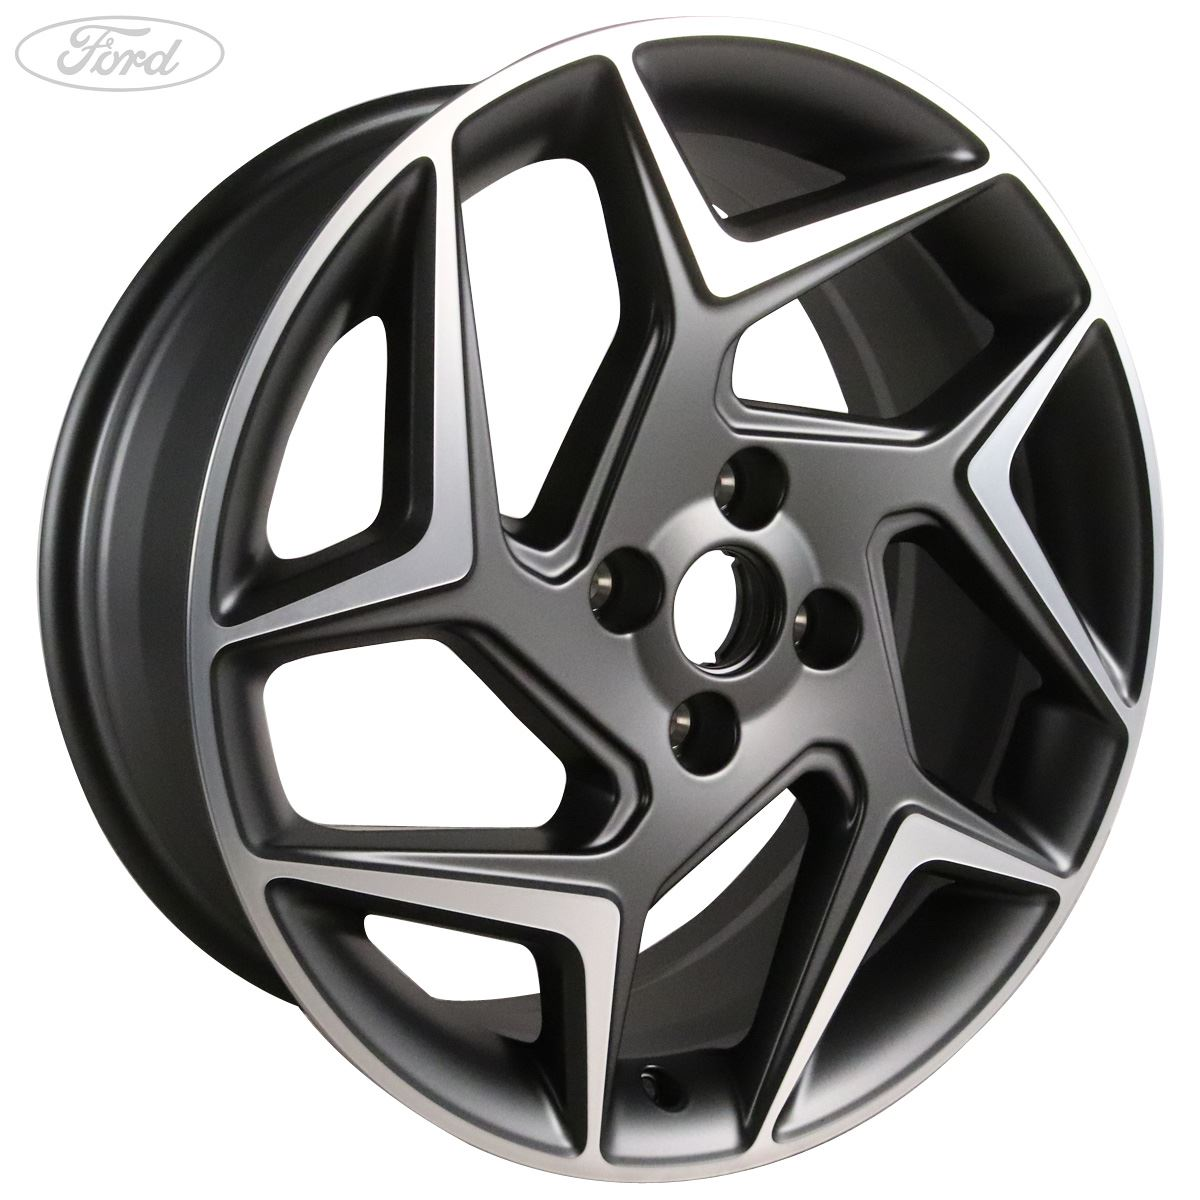 Genuine Ford Fiesta St Mk8 18 Alloy Wheel 5x2 Spoke Magnetite Machined 2169247 Ebay